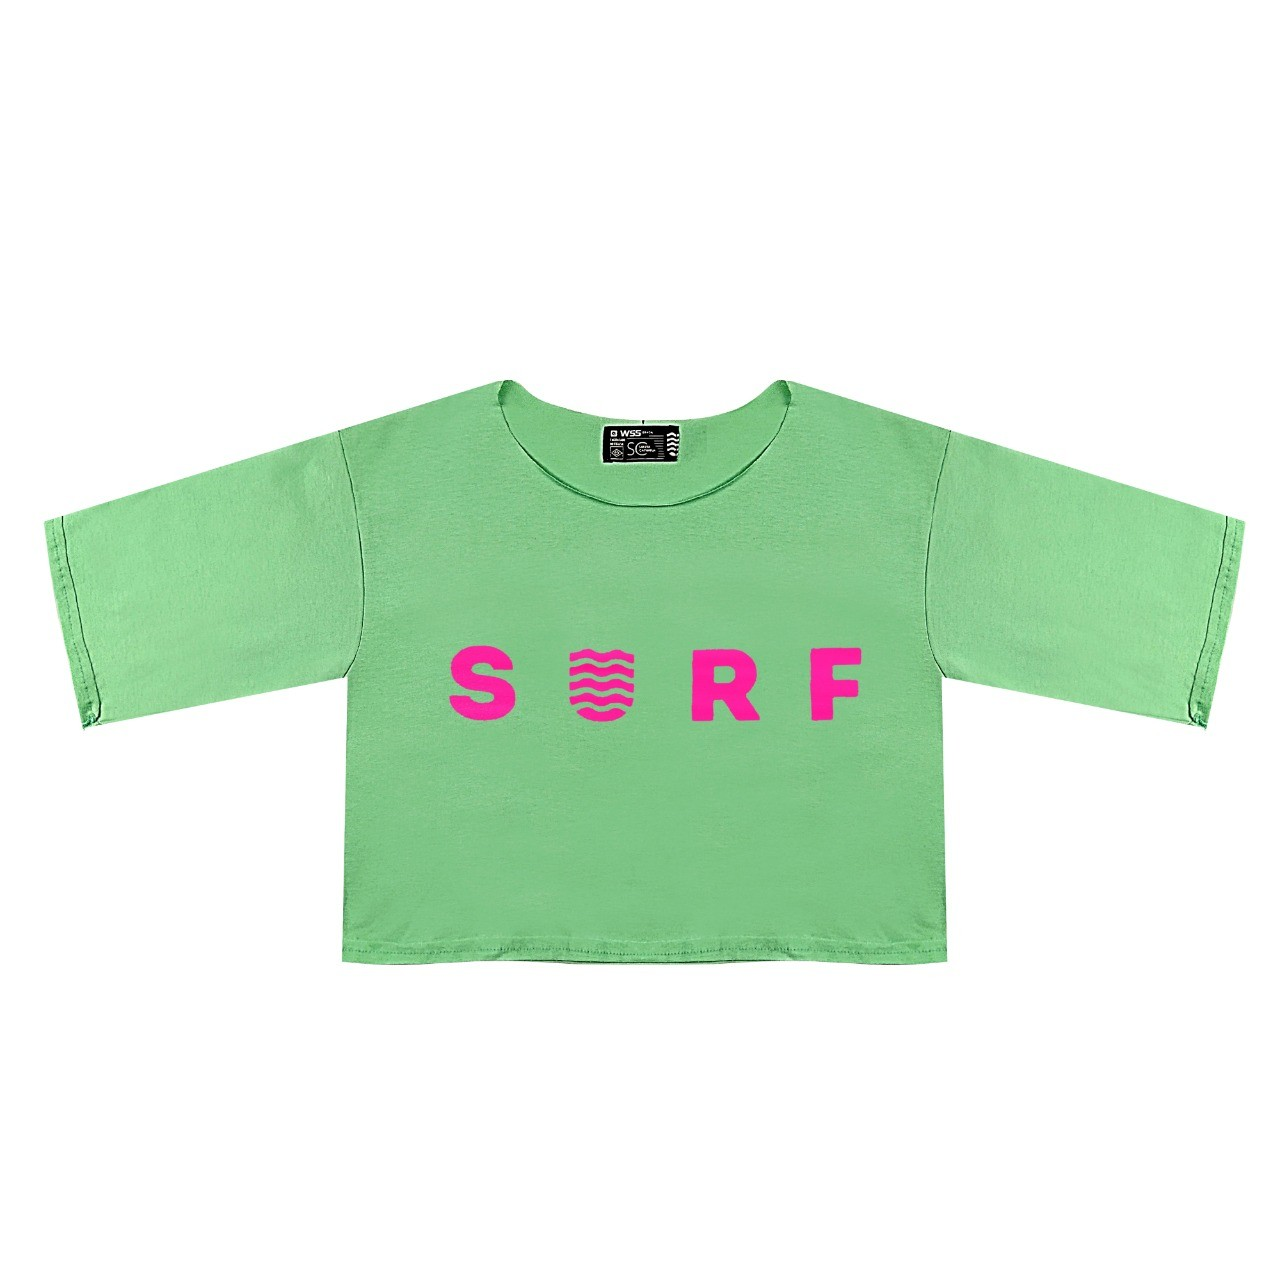 Blusa Cropped Wss Pink Neon Verde